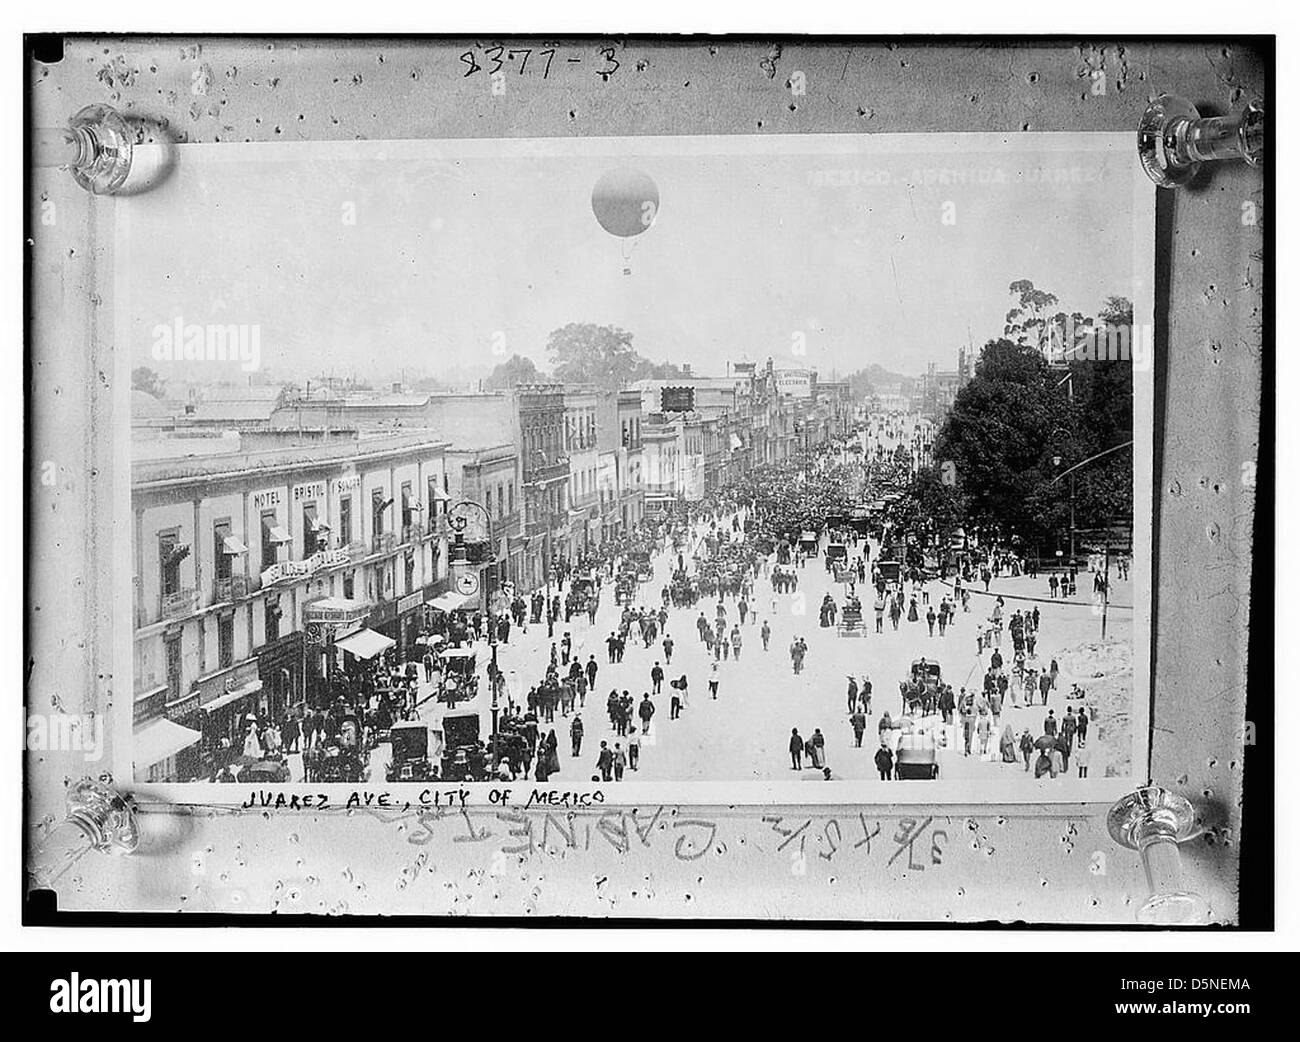 history of mexico city 1910 Mexico city, mexico's largest city and the most populous metropolitan area in the western hemisphere, is also known as distrito federal, or the federal district.